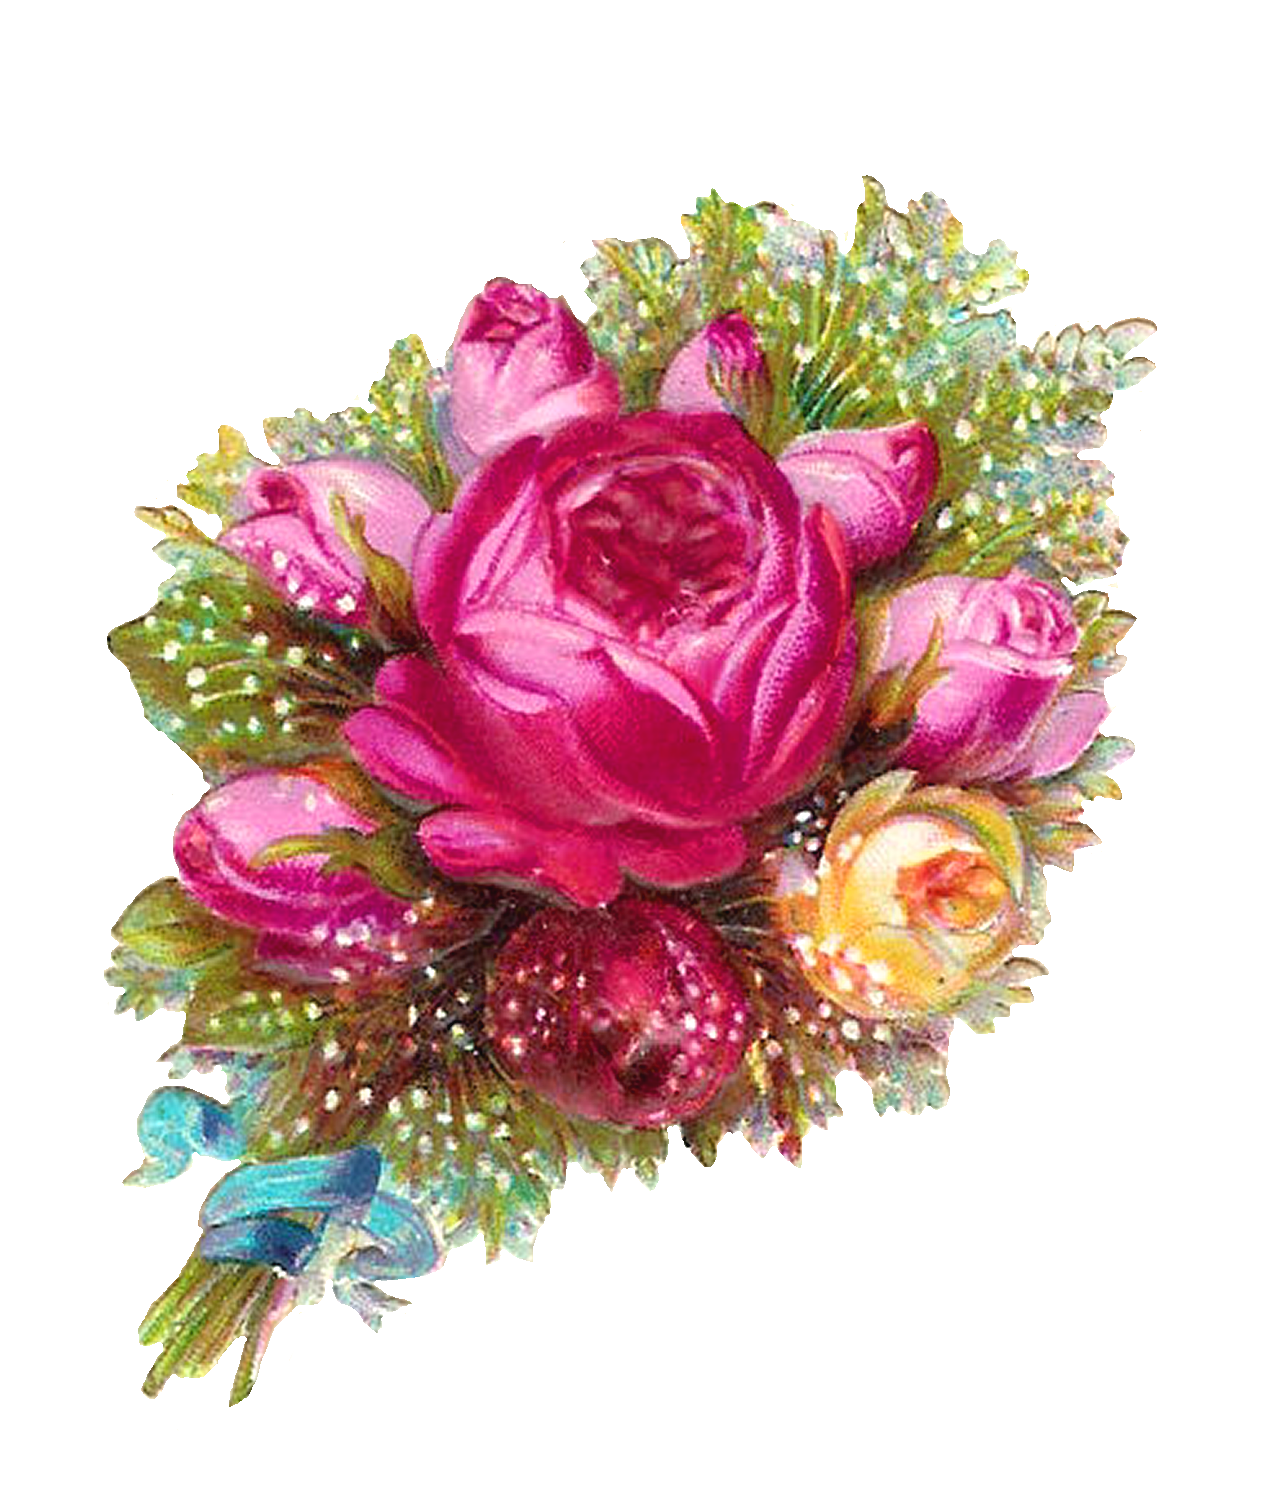 Transparent png bouquet of flowers. Images free download pngmart